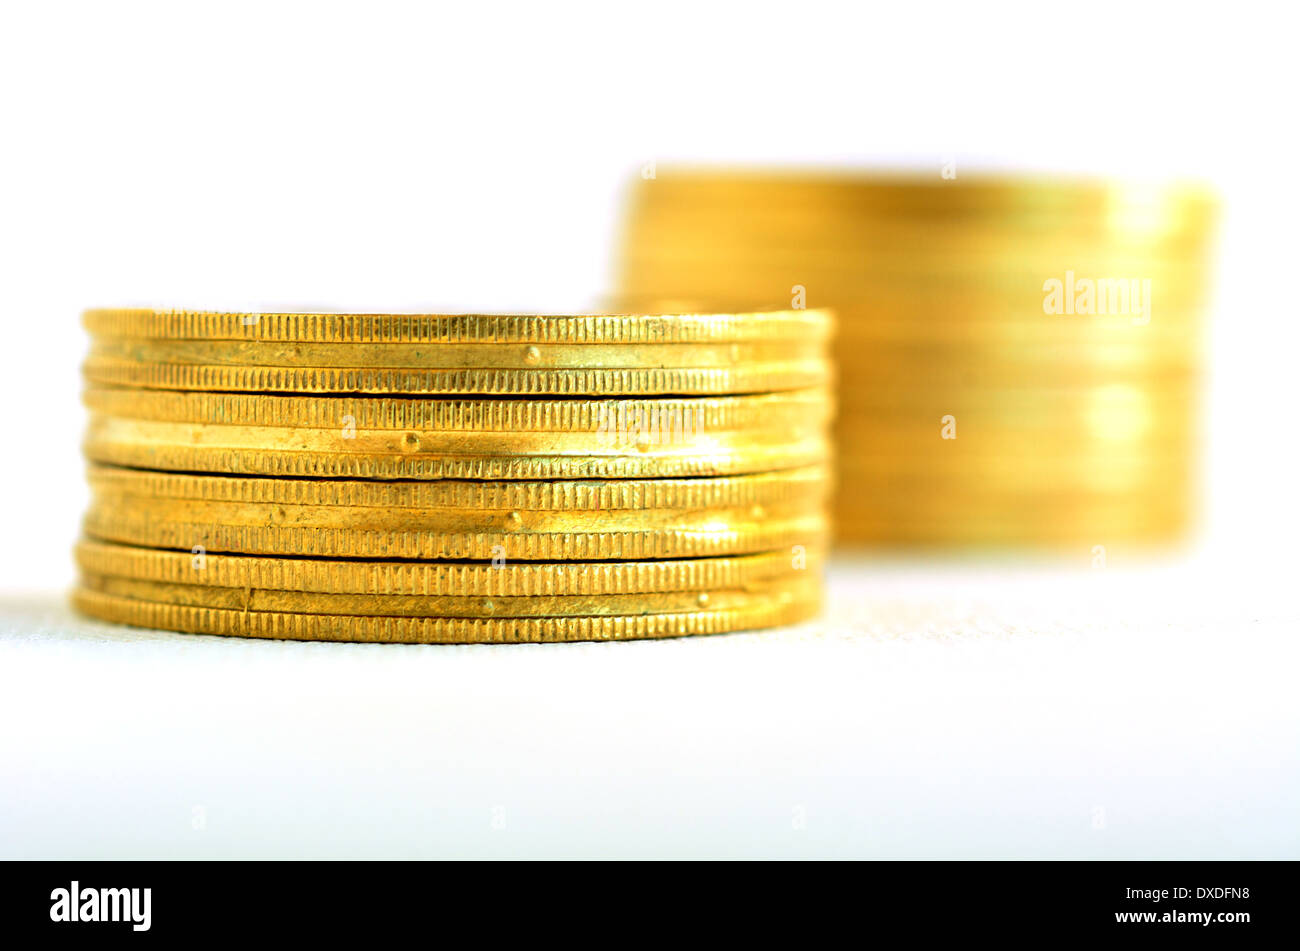 Two small Golden gold coins stacks isolated on white background. Concept photo - Stock Image